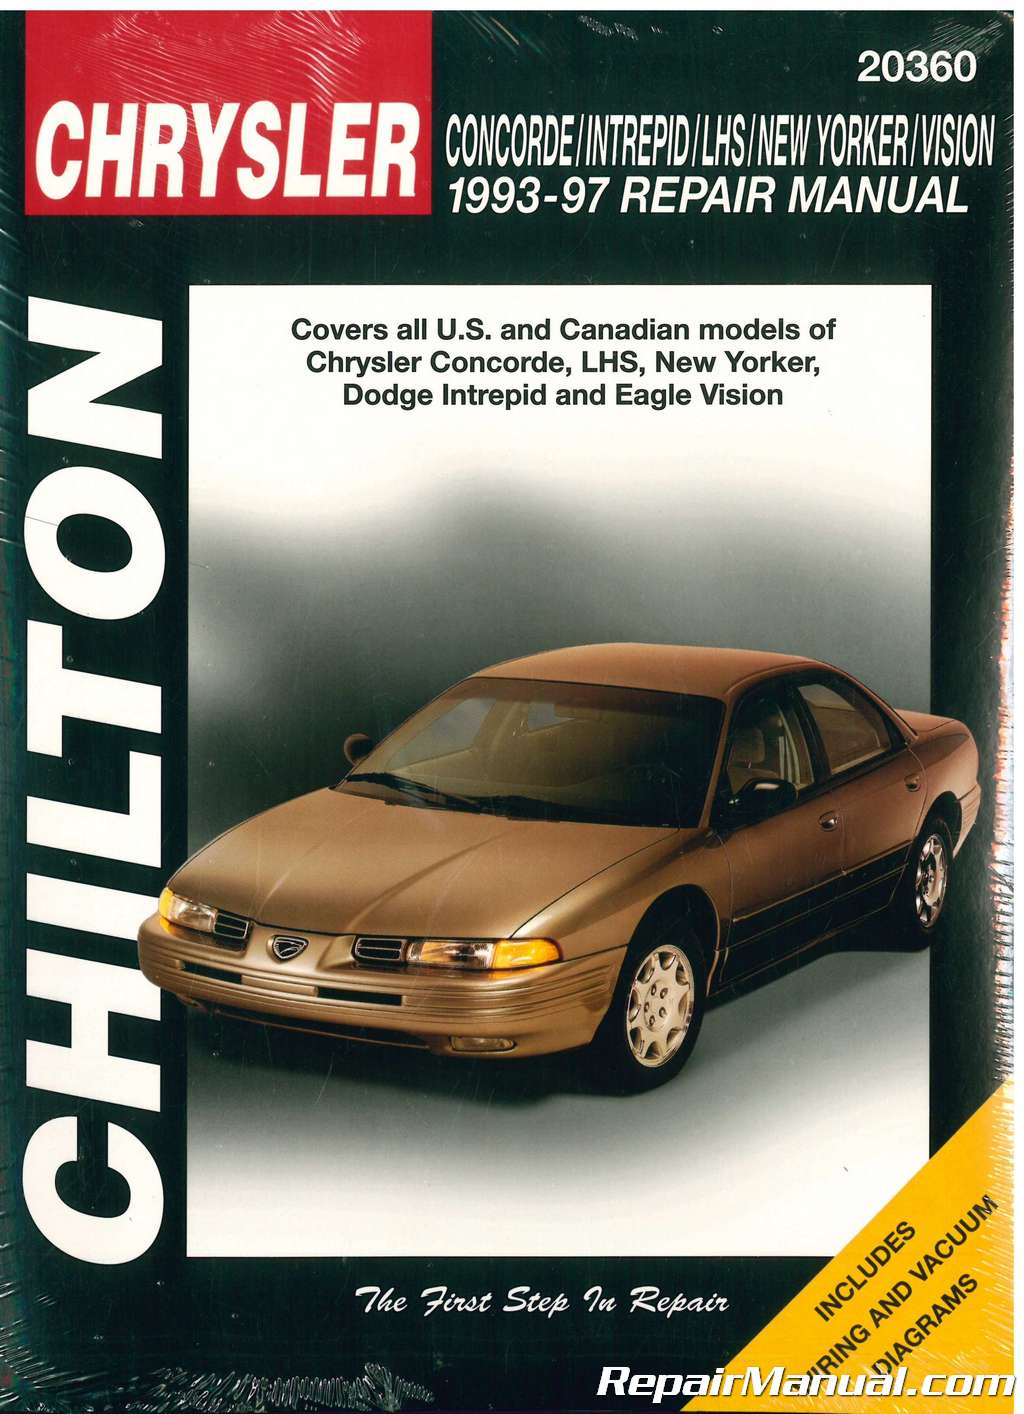 Chilton Chrysler Concorde Intrepid New Yorker LHS Vision 1993-1997 Repair  Manual_001